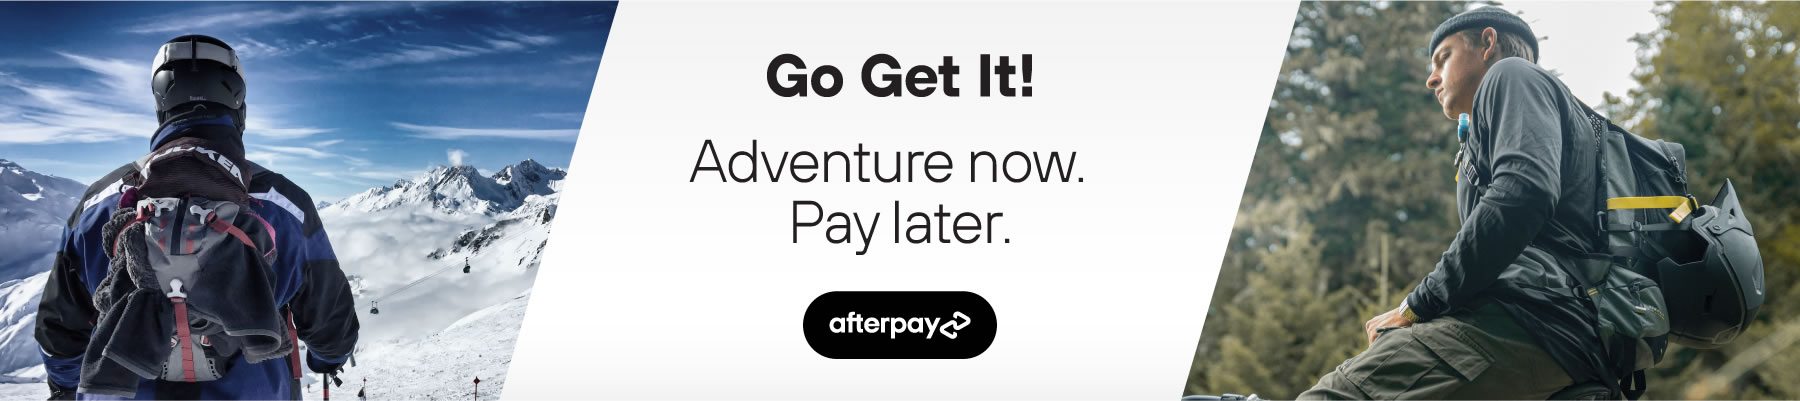 Afterpay. Go Get It! Adventure Now. Pay Later on Kulkea.com